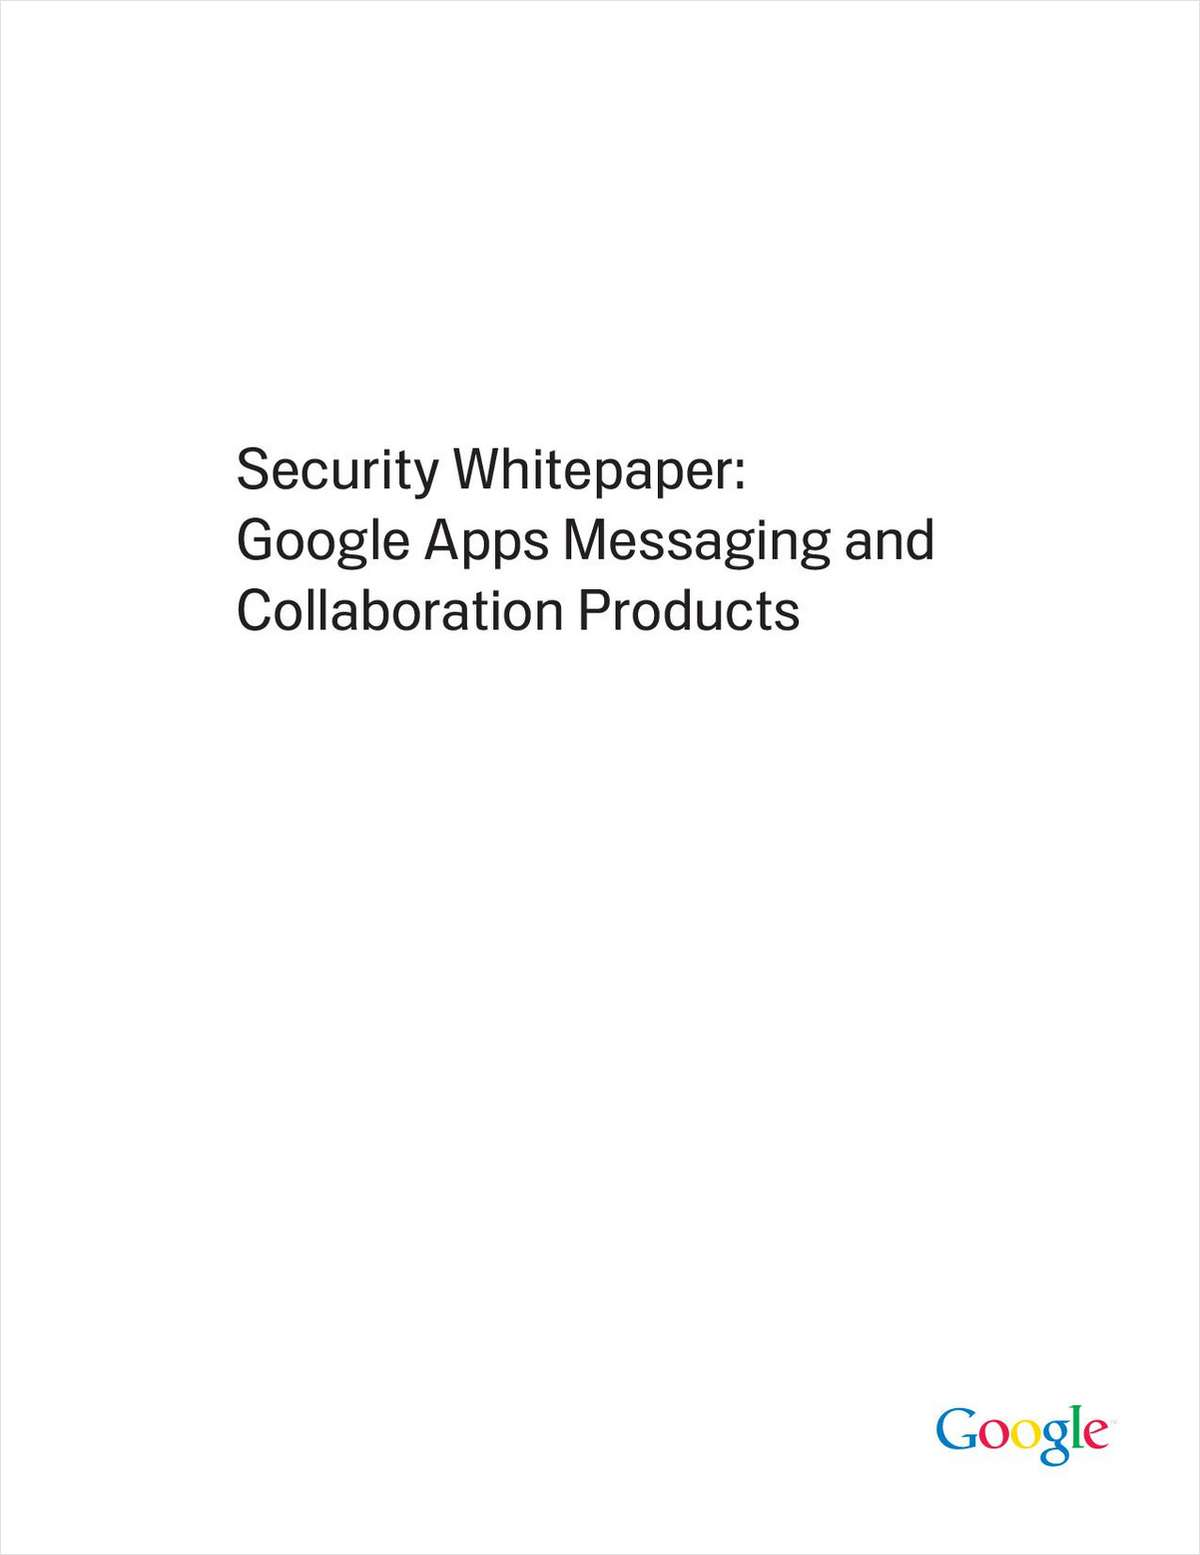 Security White Paper: Google Apps Messaging and Collaboration Products